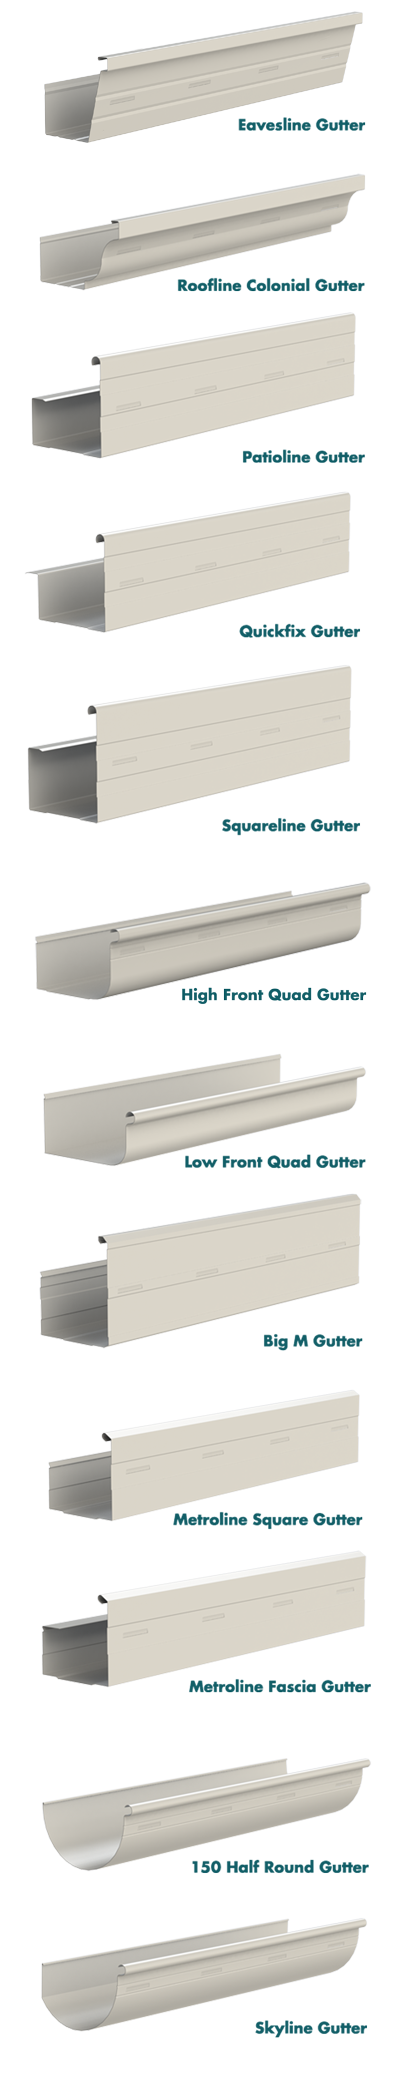 Image showing renders of the different gutter types available from Metroll